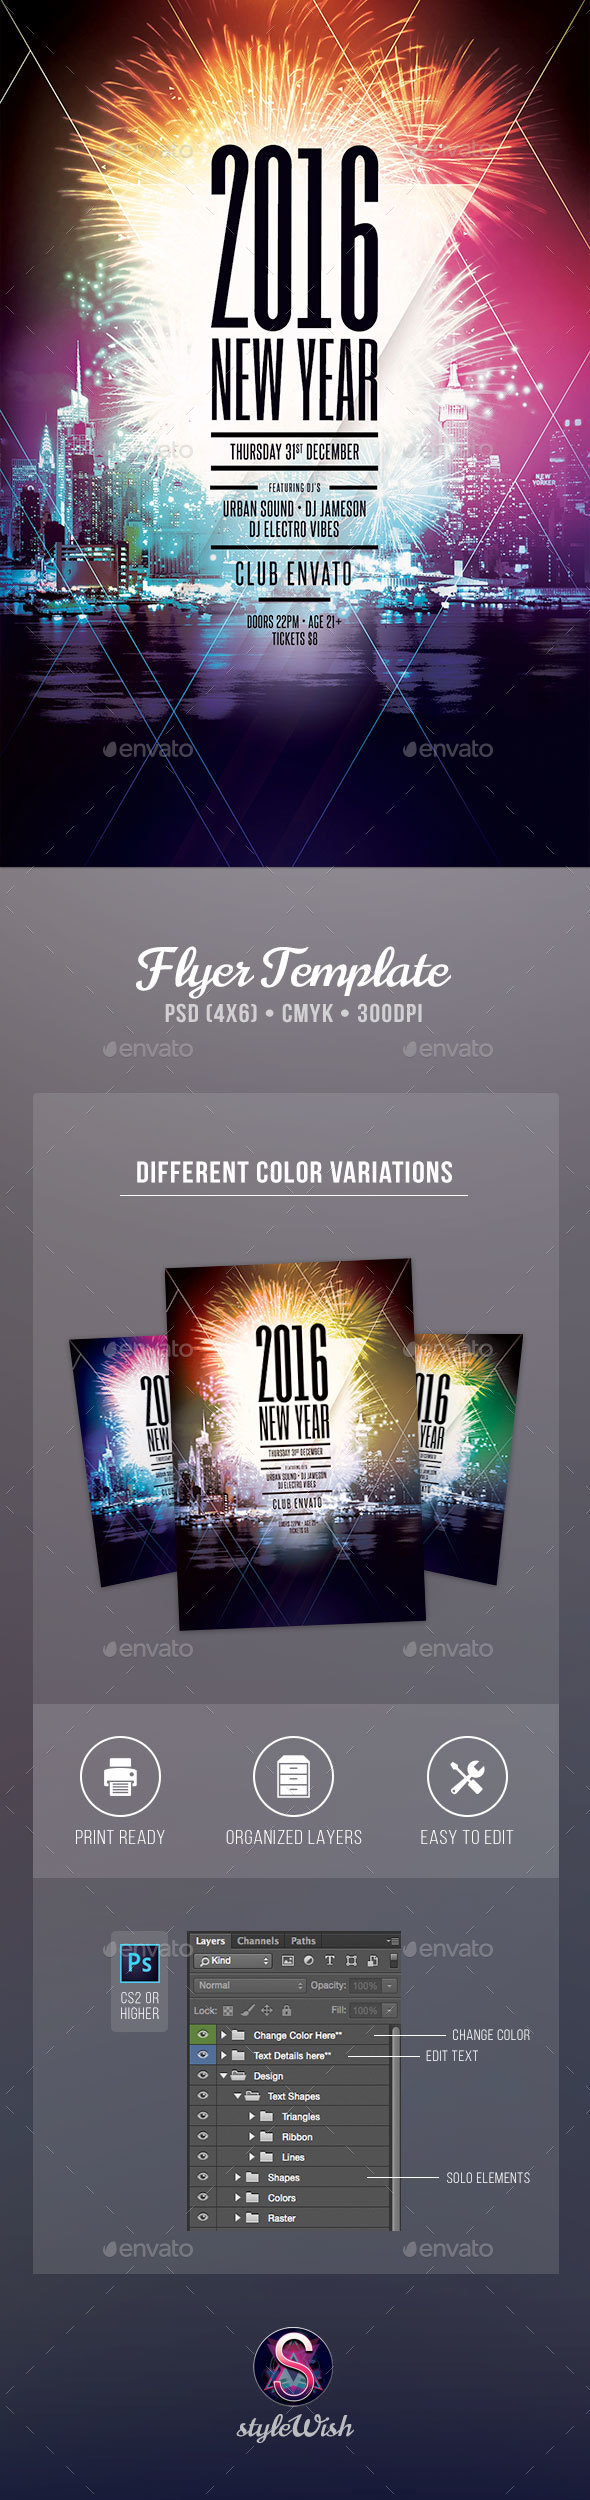 2018 New Year Flyer Template | Flyer template, Template and Party flyer